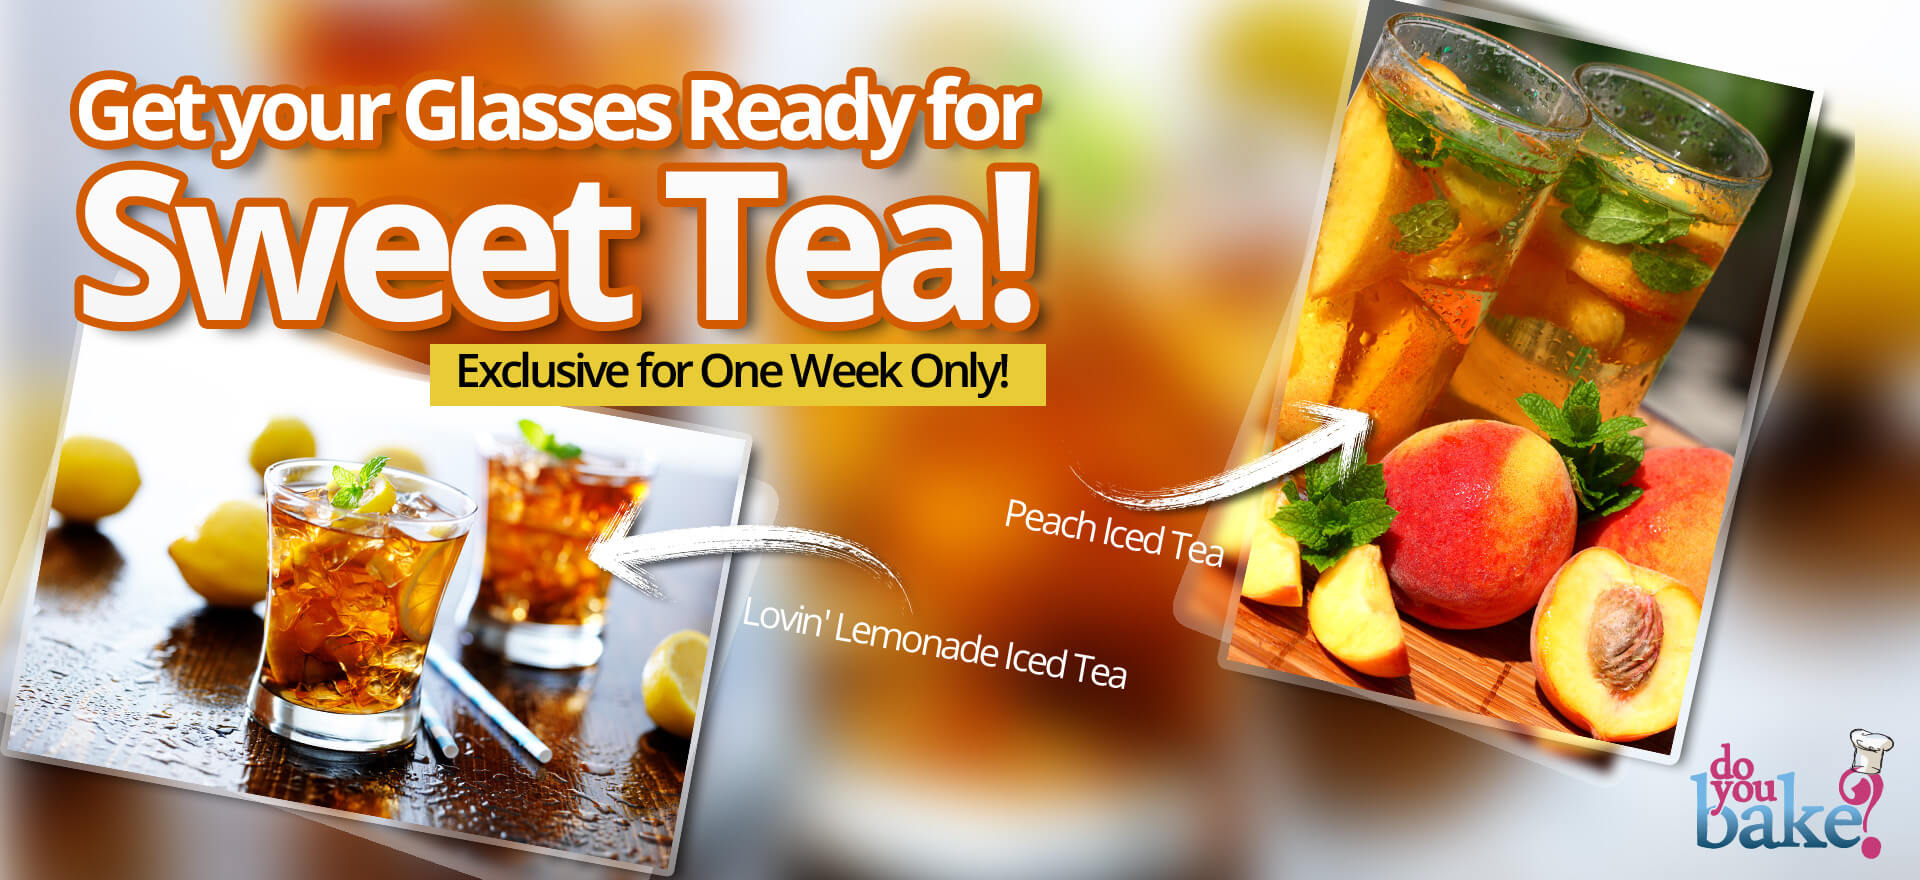 Iced-Tea-Promotion-Banner